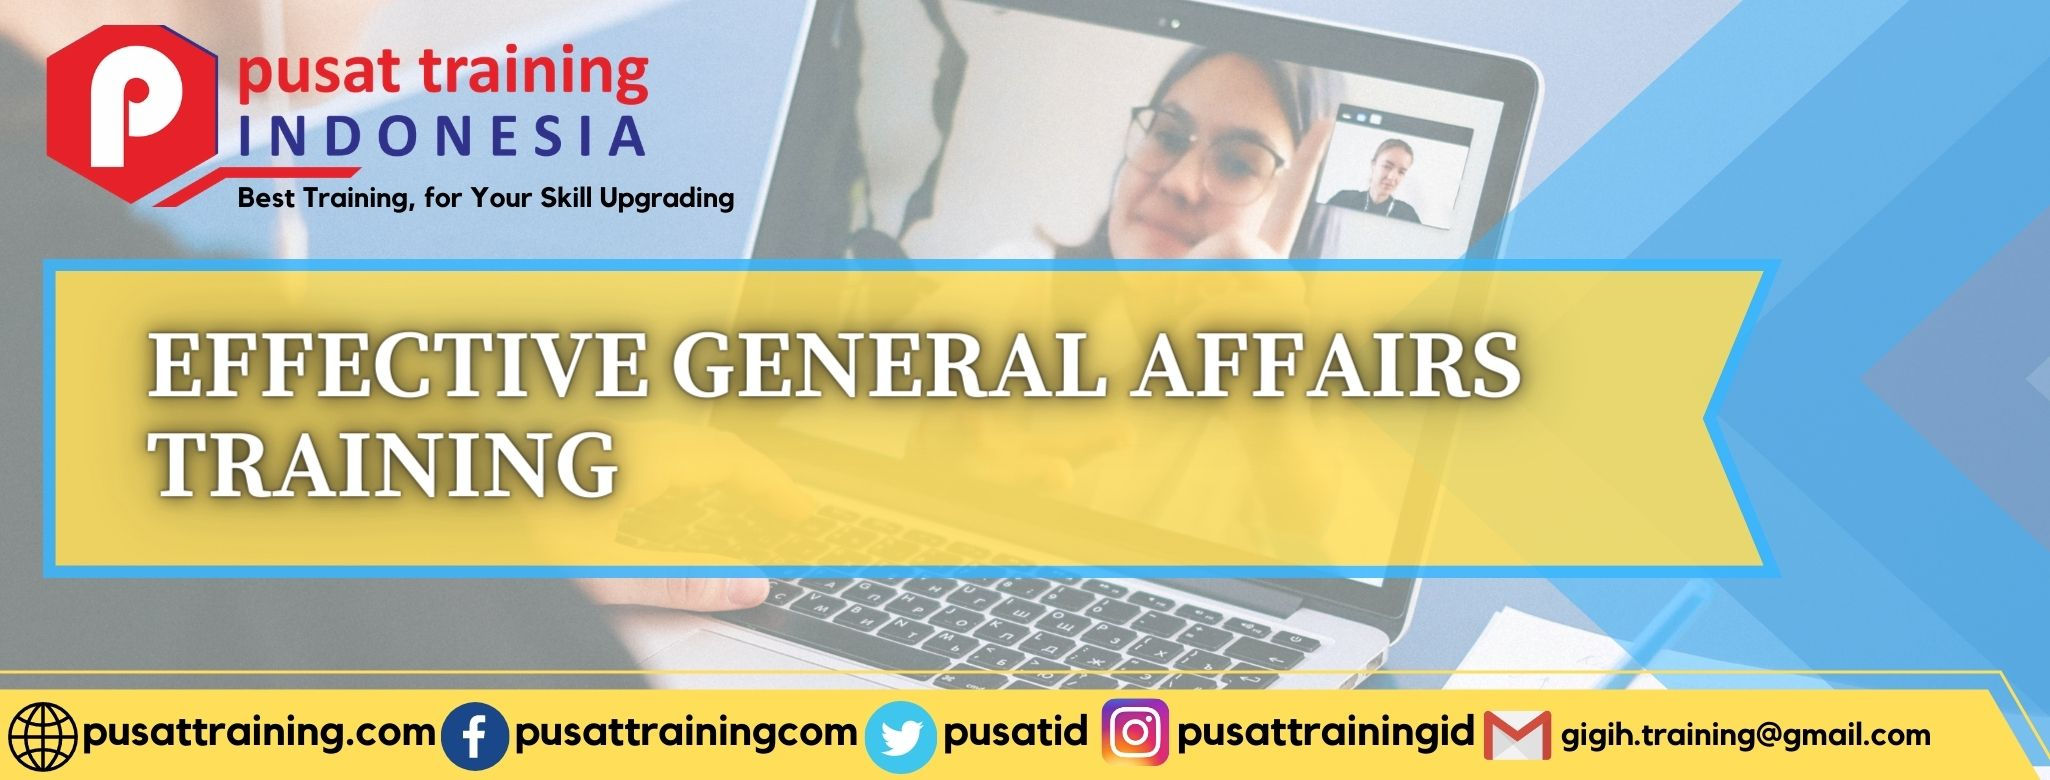 EFFECTIVE GENERAL AFFAIRS TRAINING